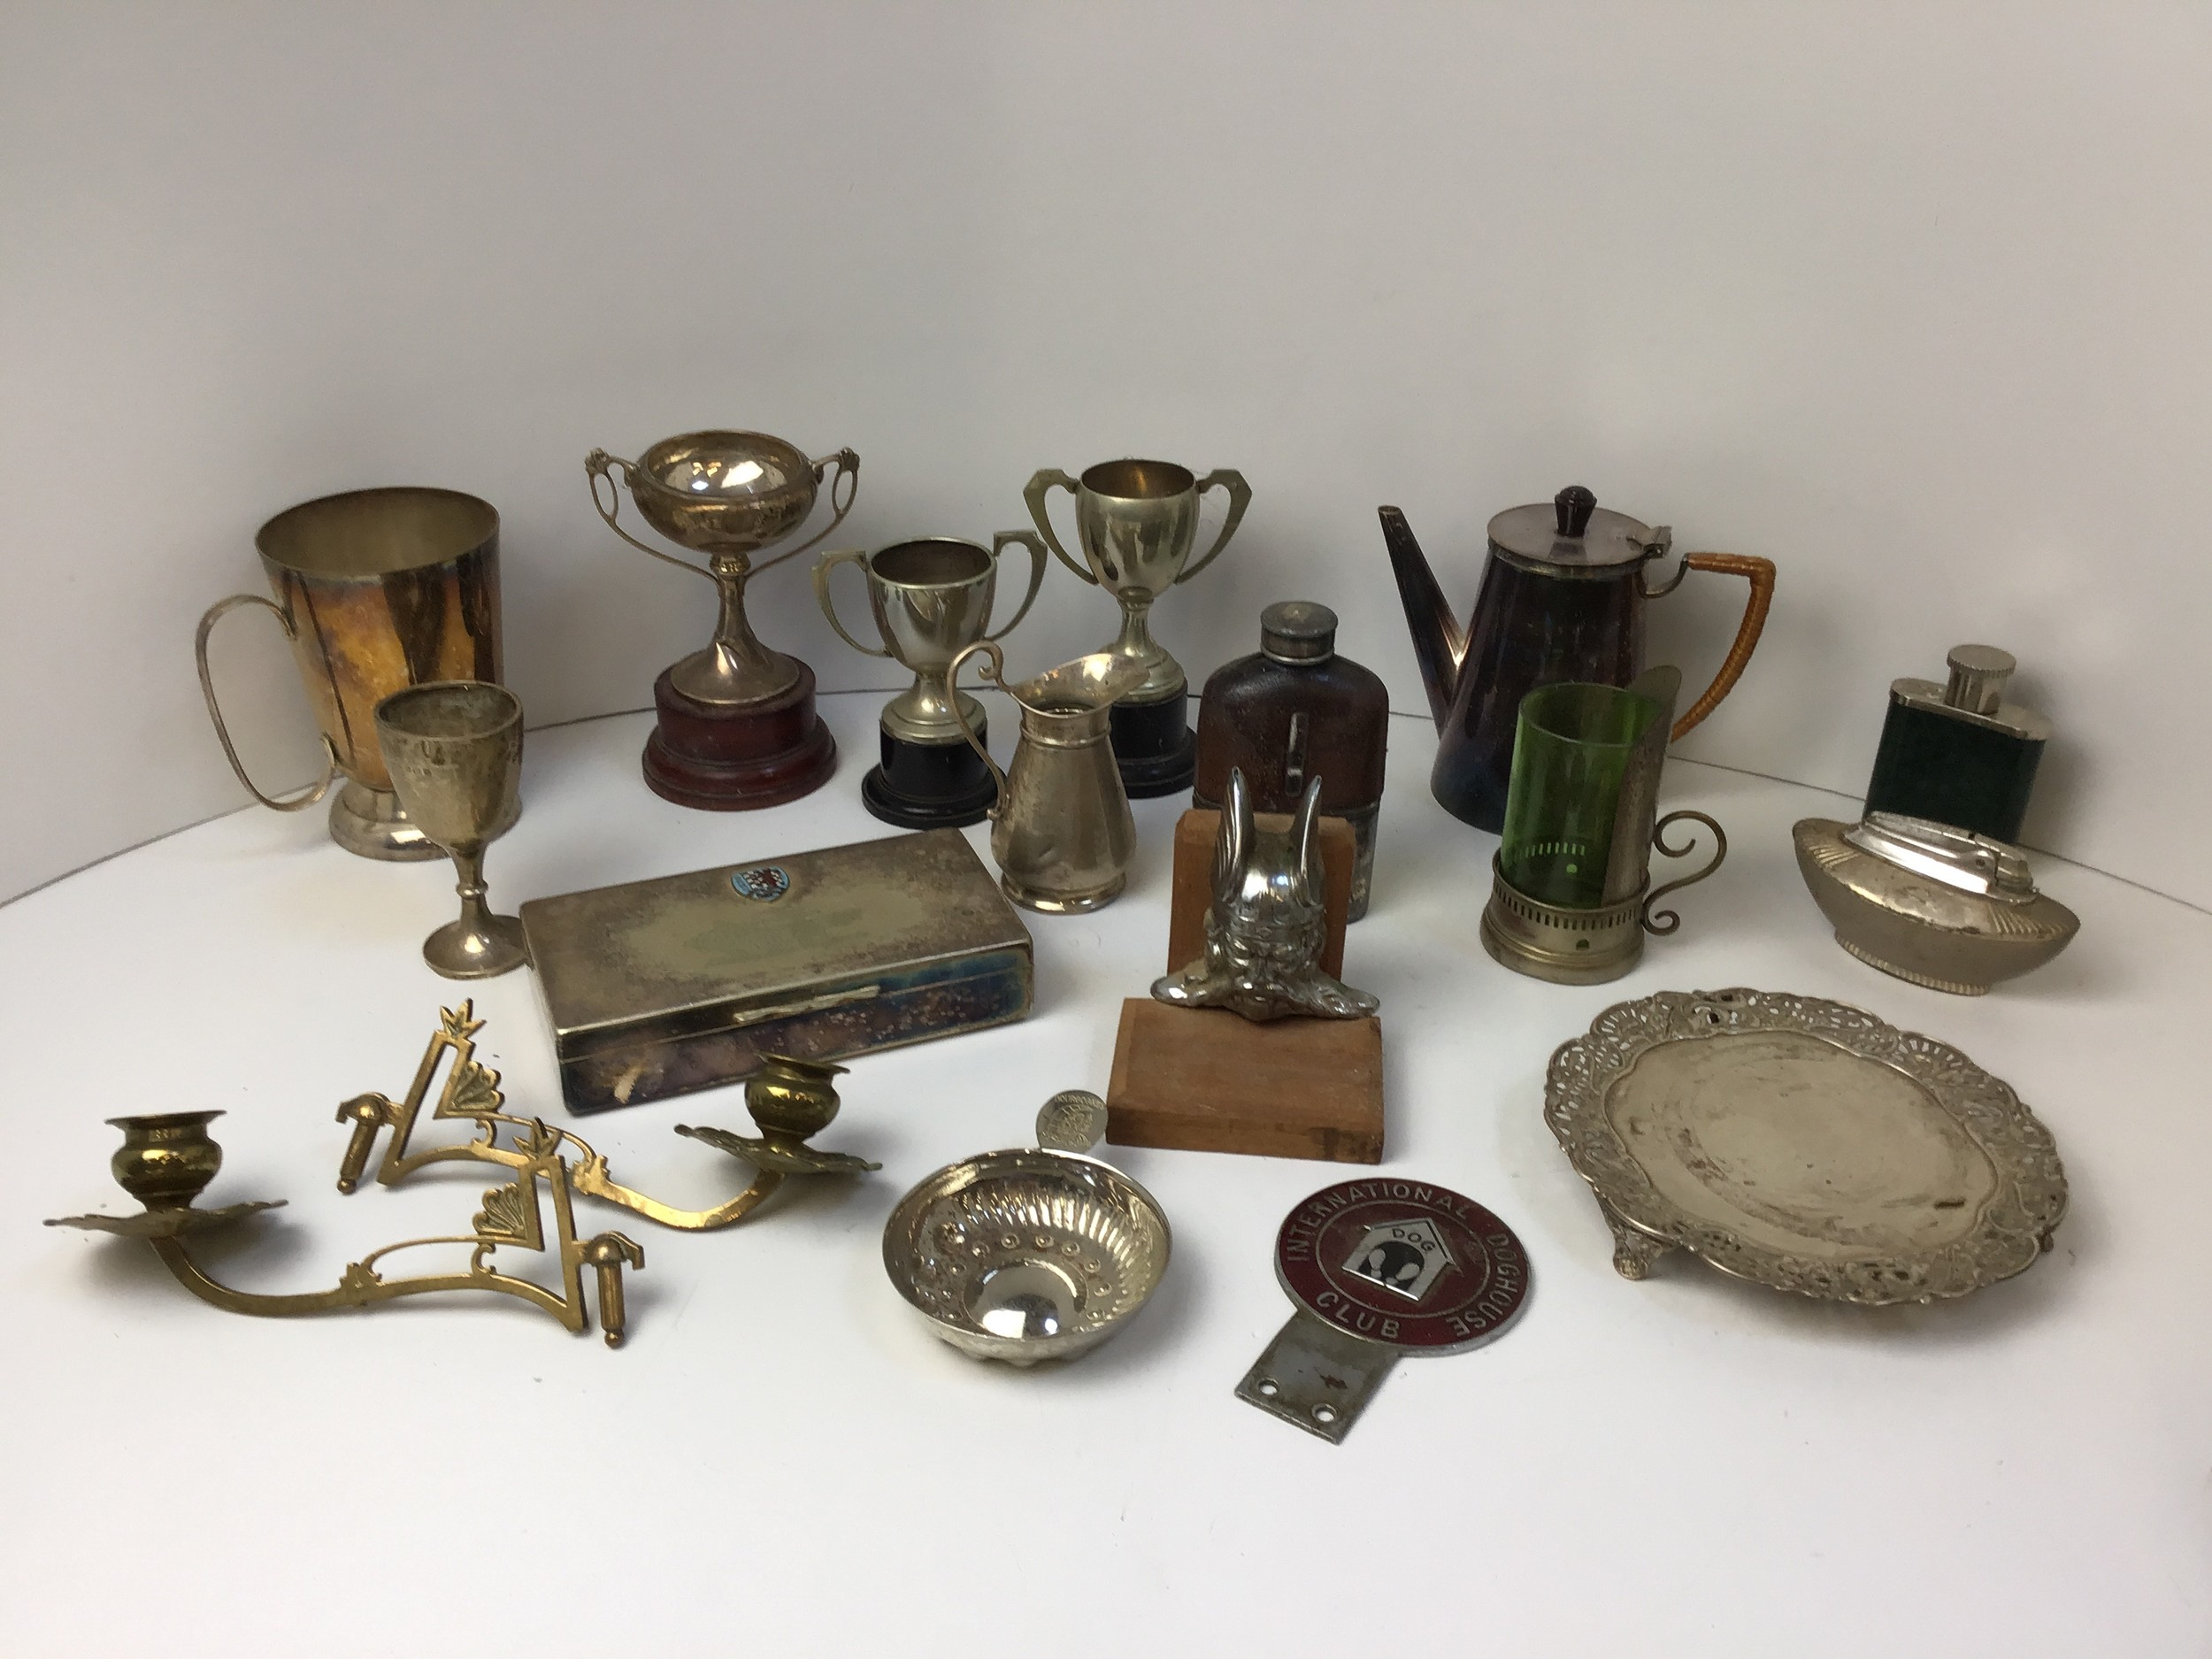 Metalware - Trophies, Hip Flasks and Table Lighter etc